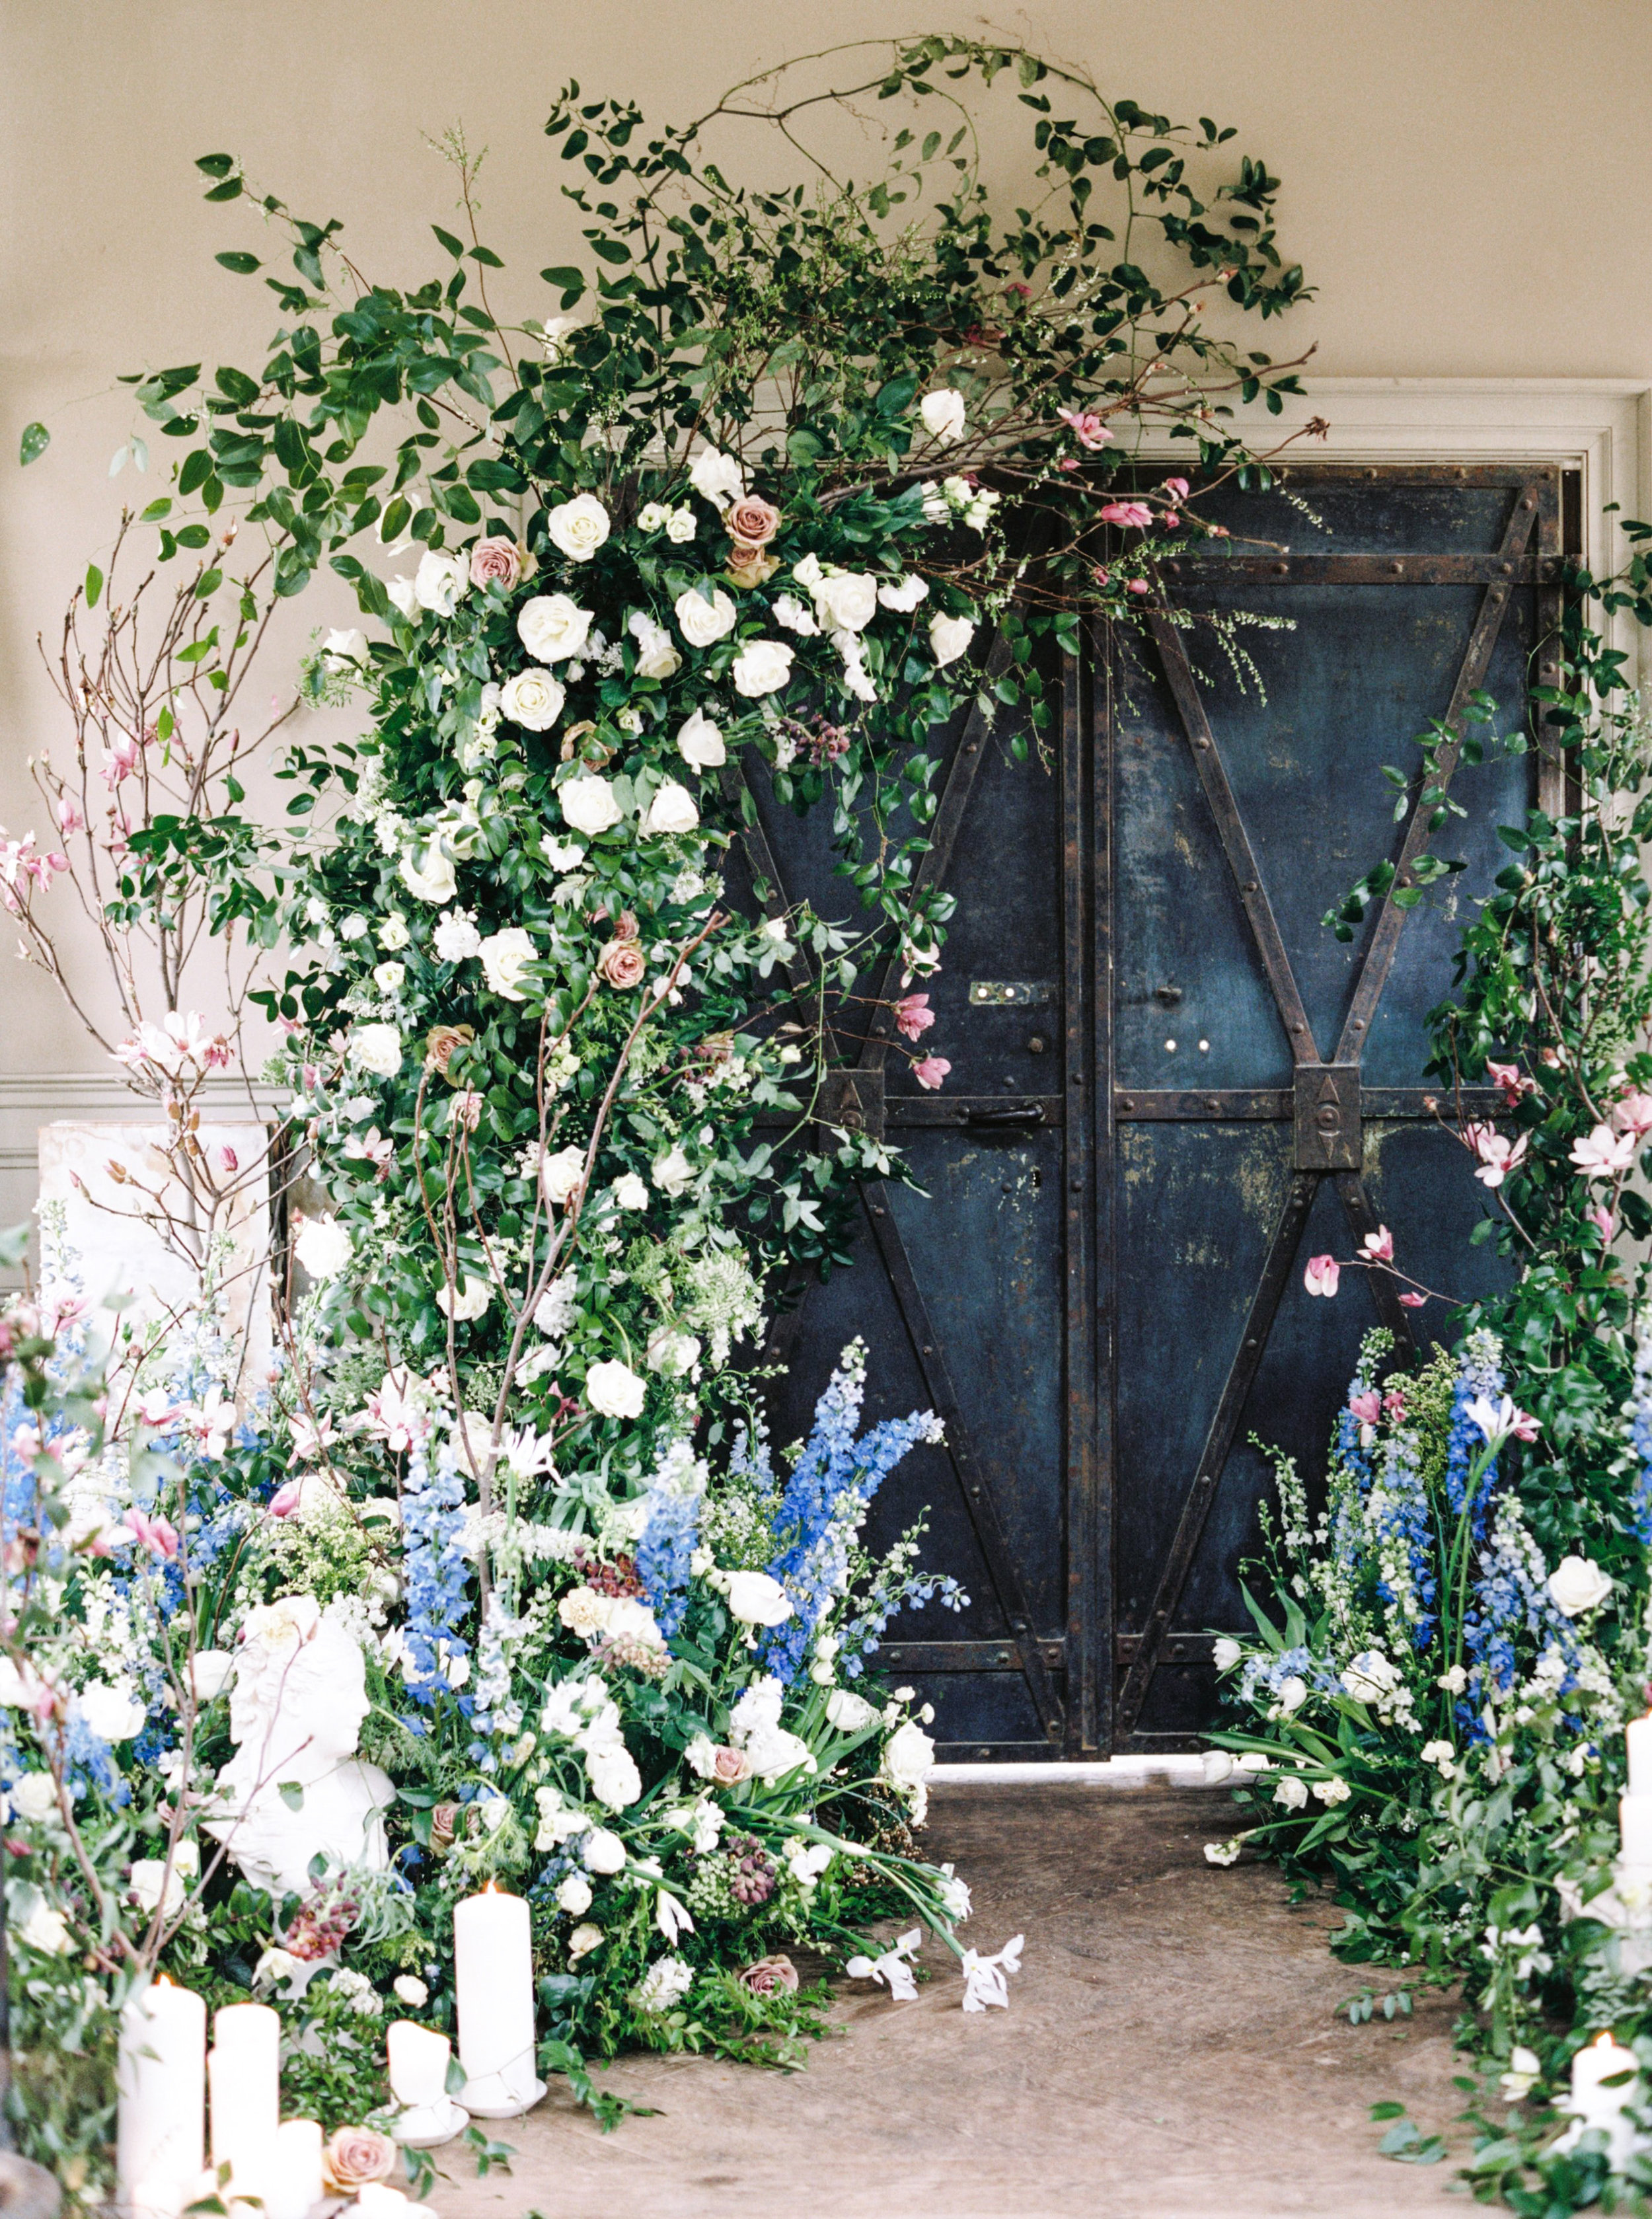 Events - We design floral arrangements for events of all sizes, from intimate occasions to large-scale celebrations. We provide full concept floral design, floral decor installations, and custom order flowers for each and every event.